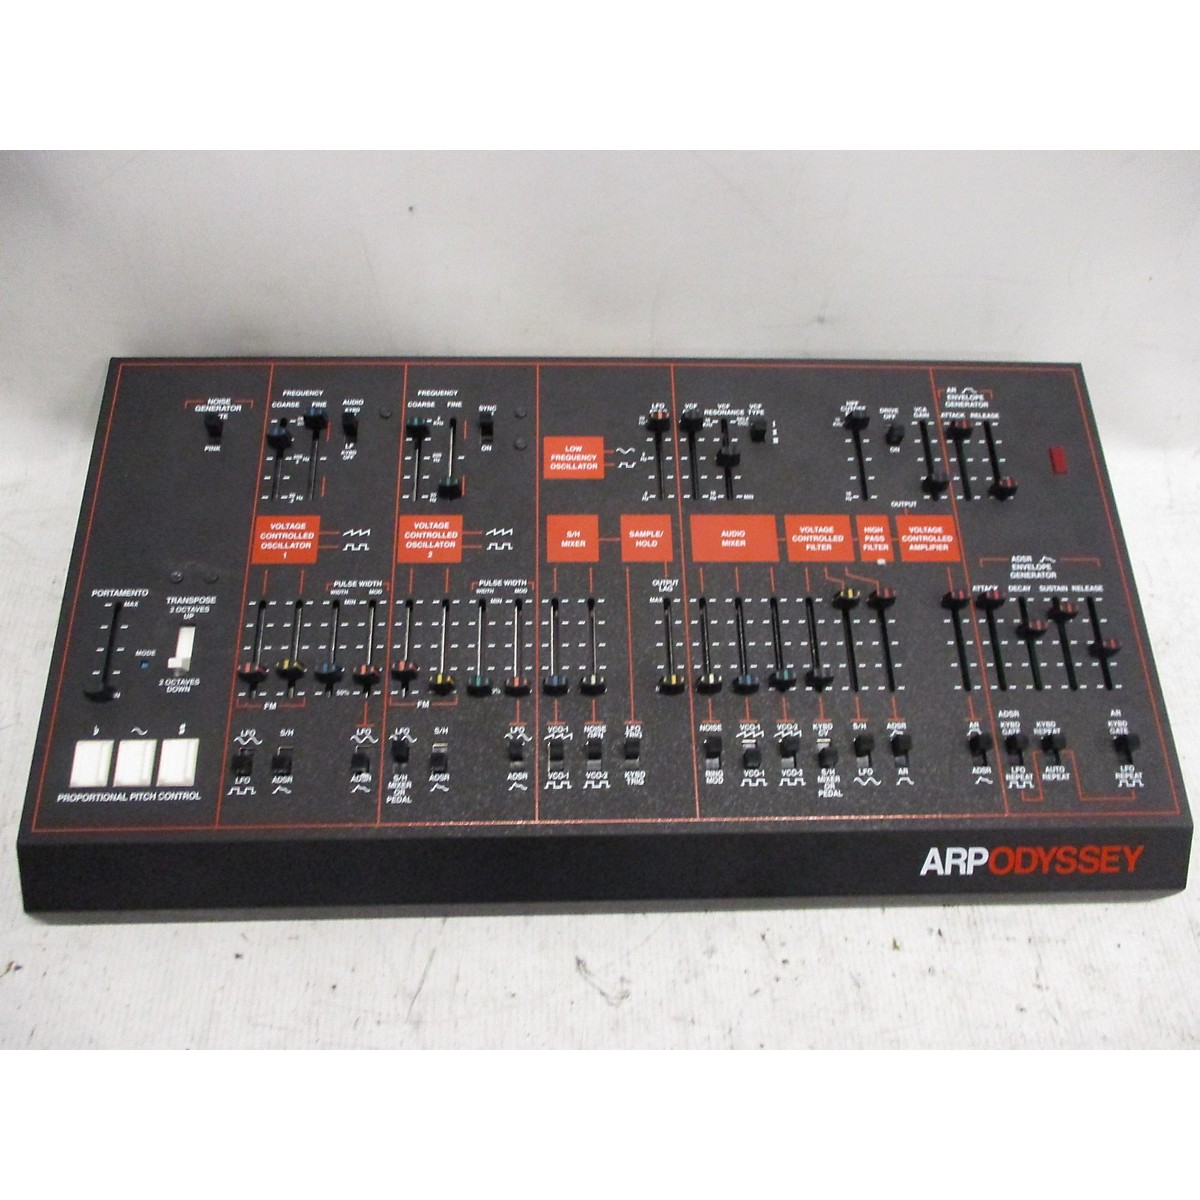 In Store Used Used ARP Arp Odssey Synthesizer